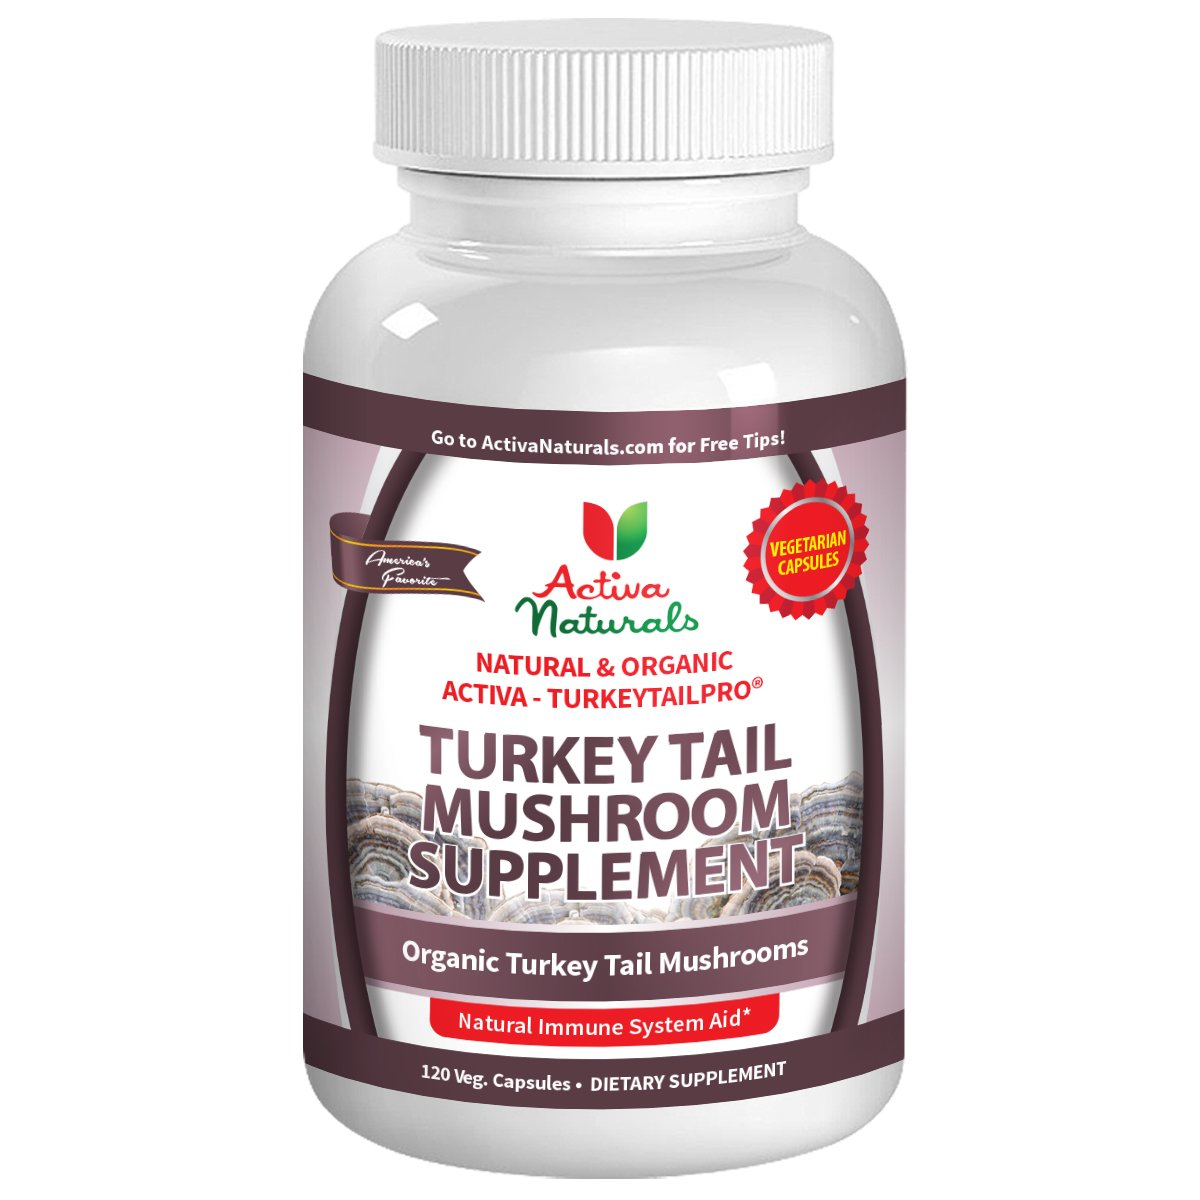 Buy herbal supplements 1000 count capsules - Amazon Com Activa Naturals Turkey Tail Mushroom Supplement 120 Veg Capsules With Pure Trametes Versicolor Mushrooms Extract Powder Blend To Support